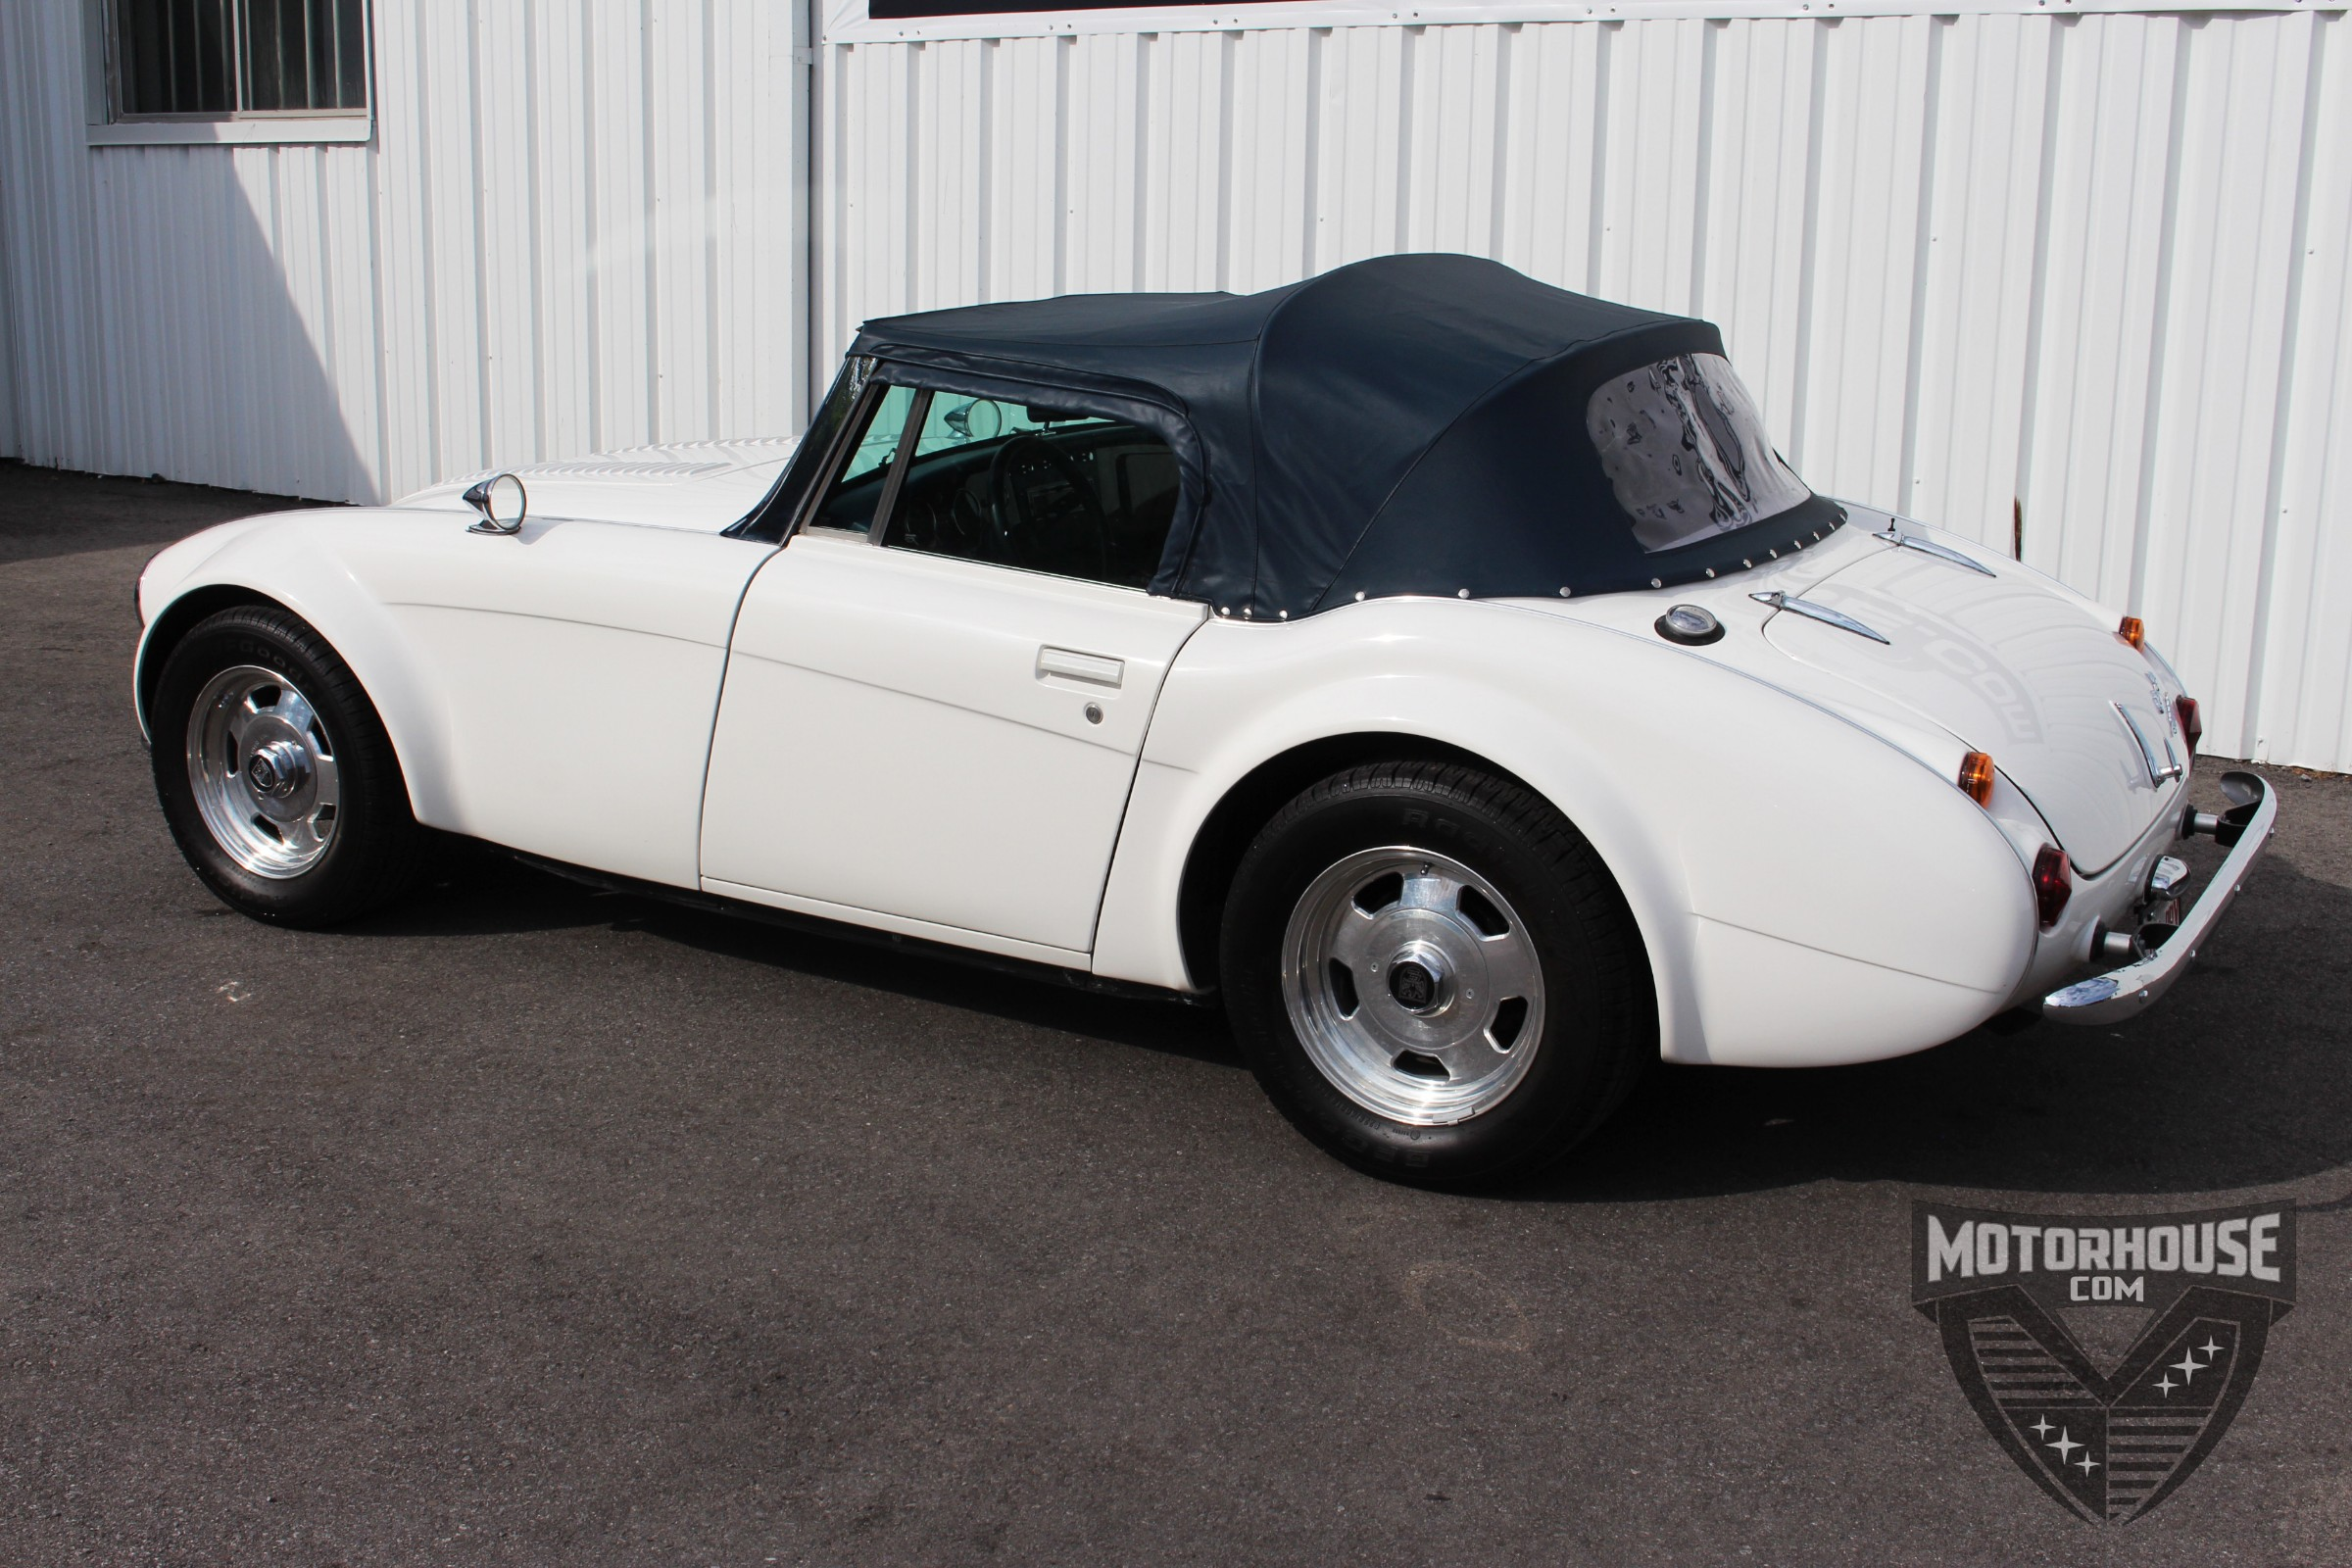 1965 Austin-Healey 3000Z Convertable (Stk: 1375) in Carleton Place - Image 7 of 48